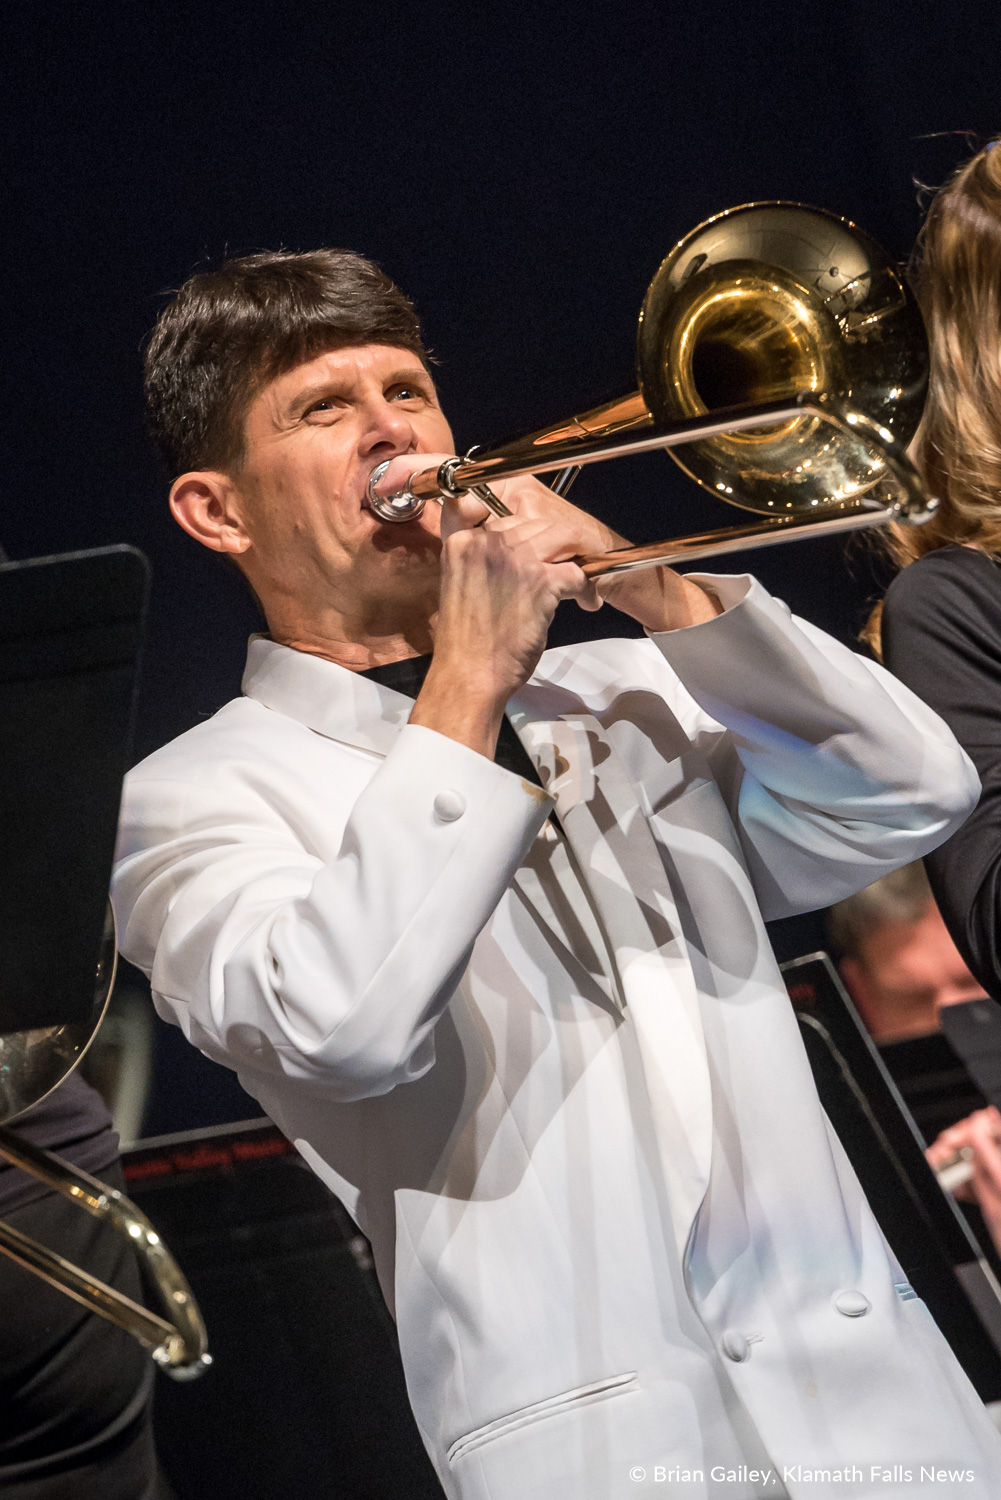 Jazz Trombonist, Harry Watters plays with the Klamath Falls Community Band. March 18, 2018 (Brian Gailey)